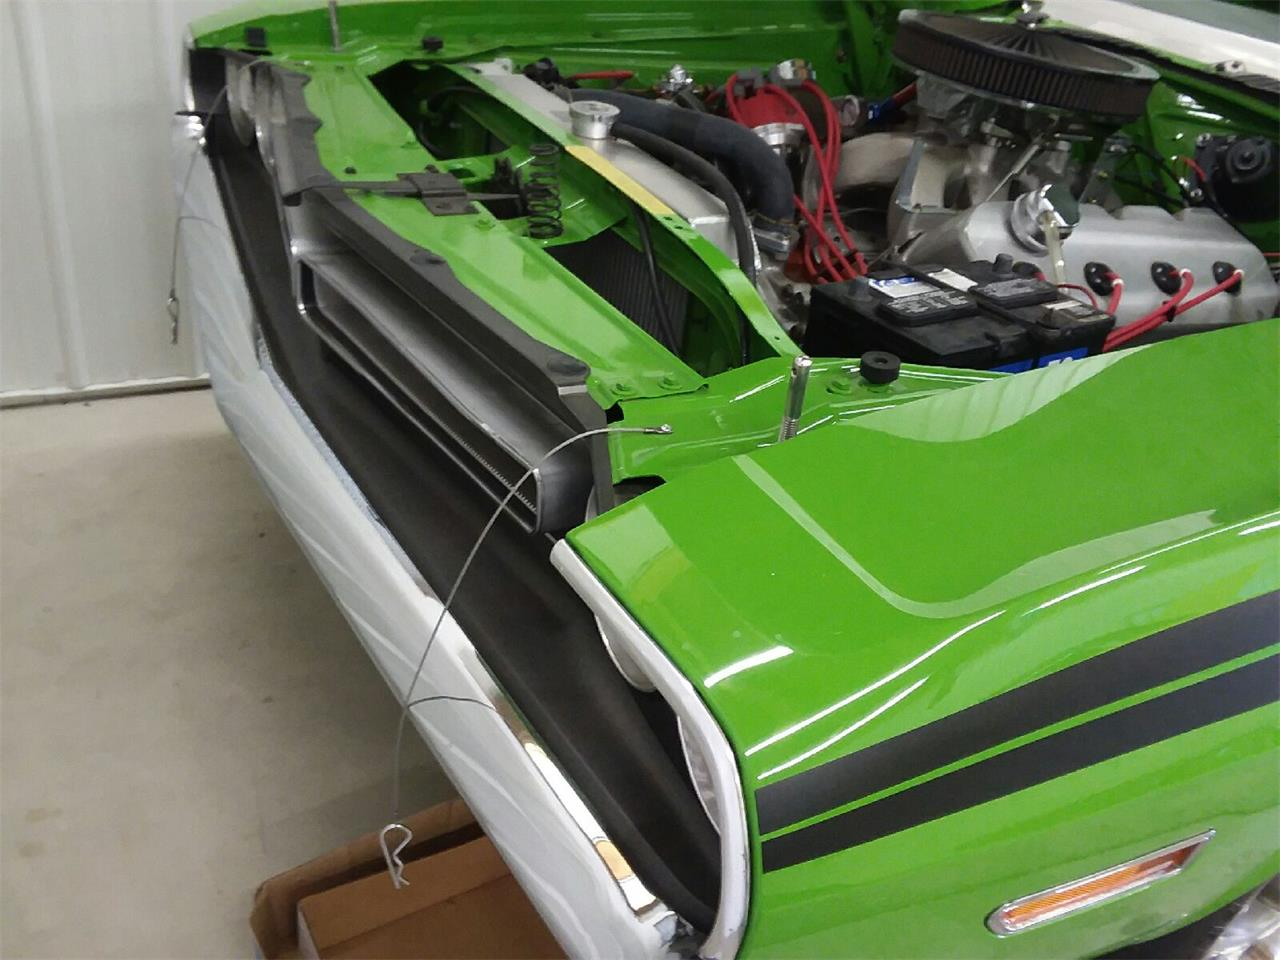 1971 Dodge Challenger R/T for sale in Waterford, PA – photo 13